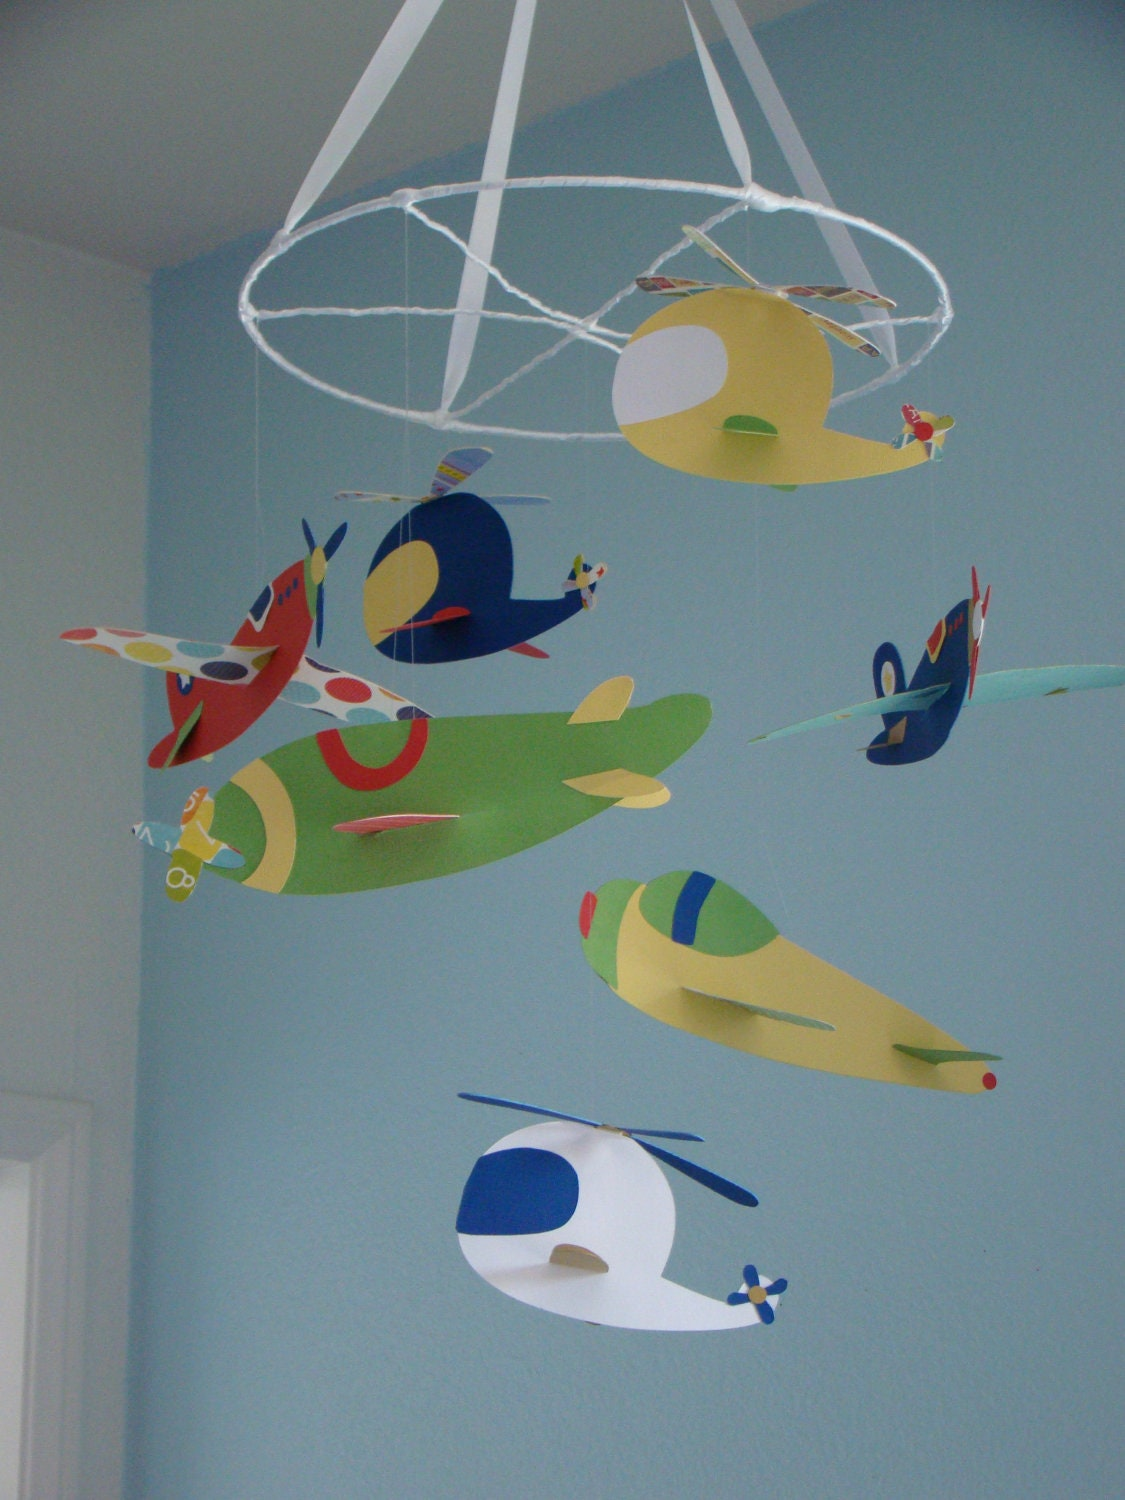 Airplane Helicopter Baby Mobile Ceiling Hanging Photography